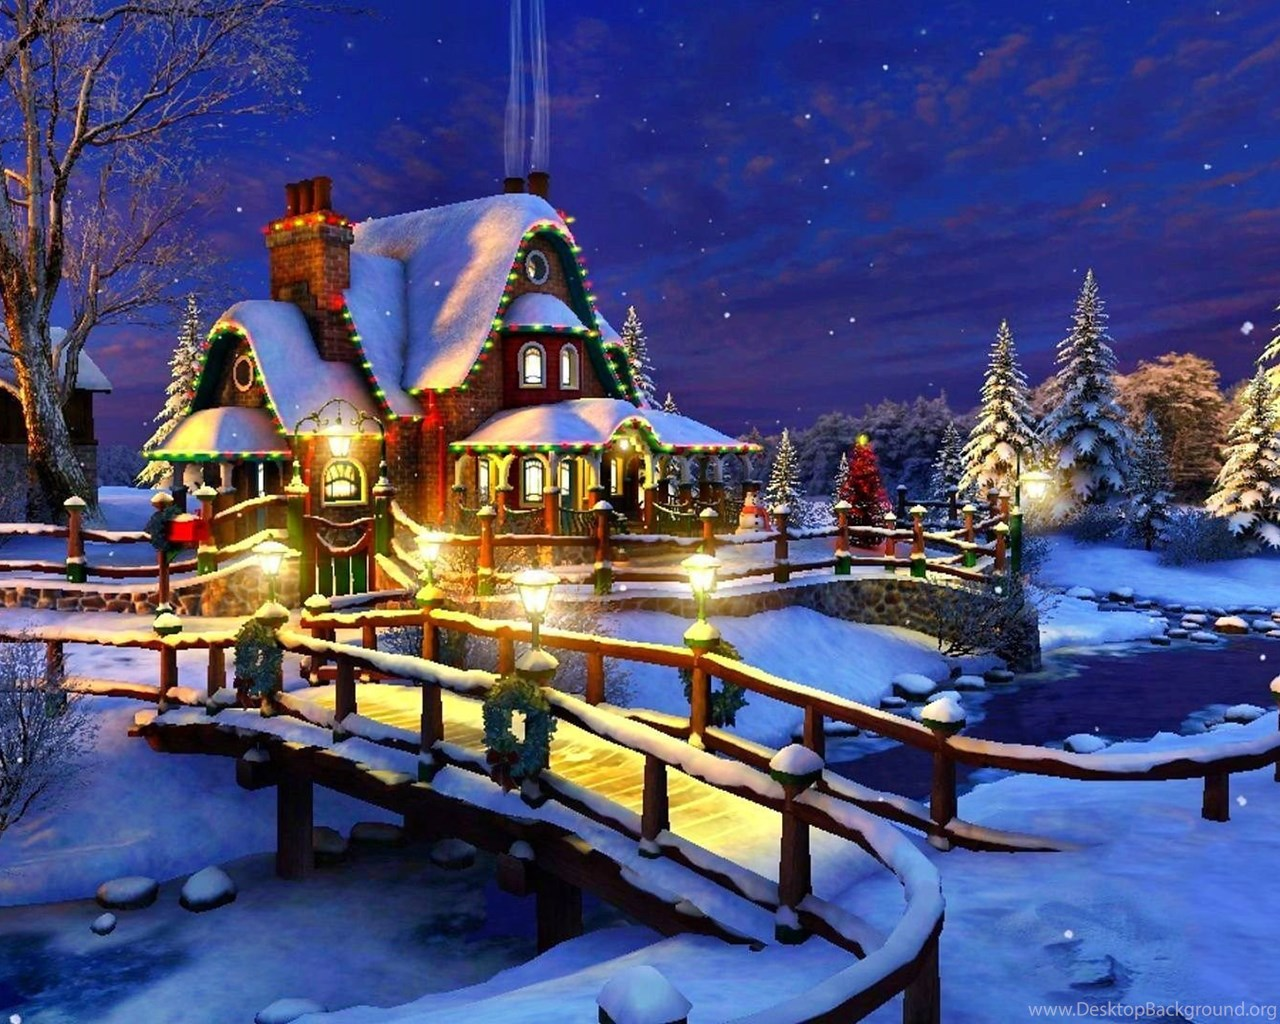 Christmas wallpapers hd 1920x1080 free wallpapers full - Free download hd wallpapers for pc 1280x1024 ...